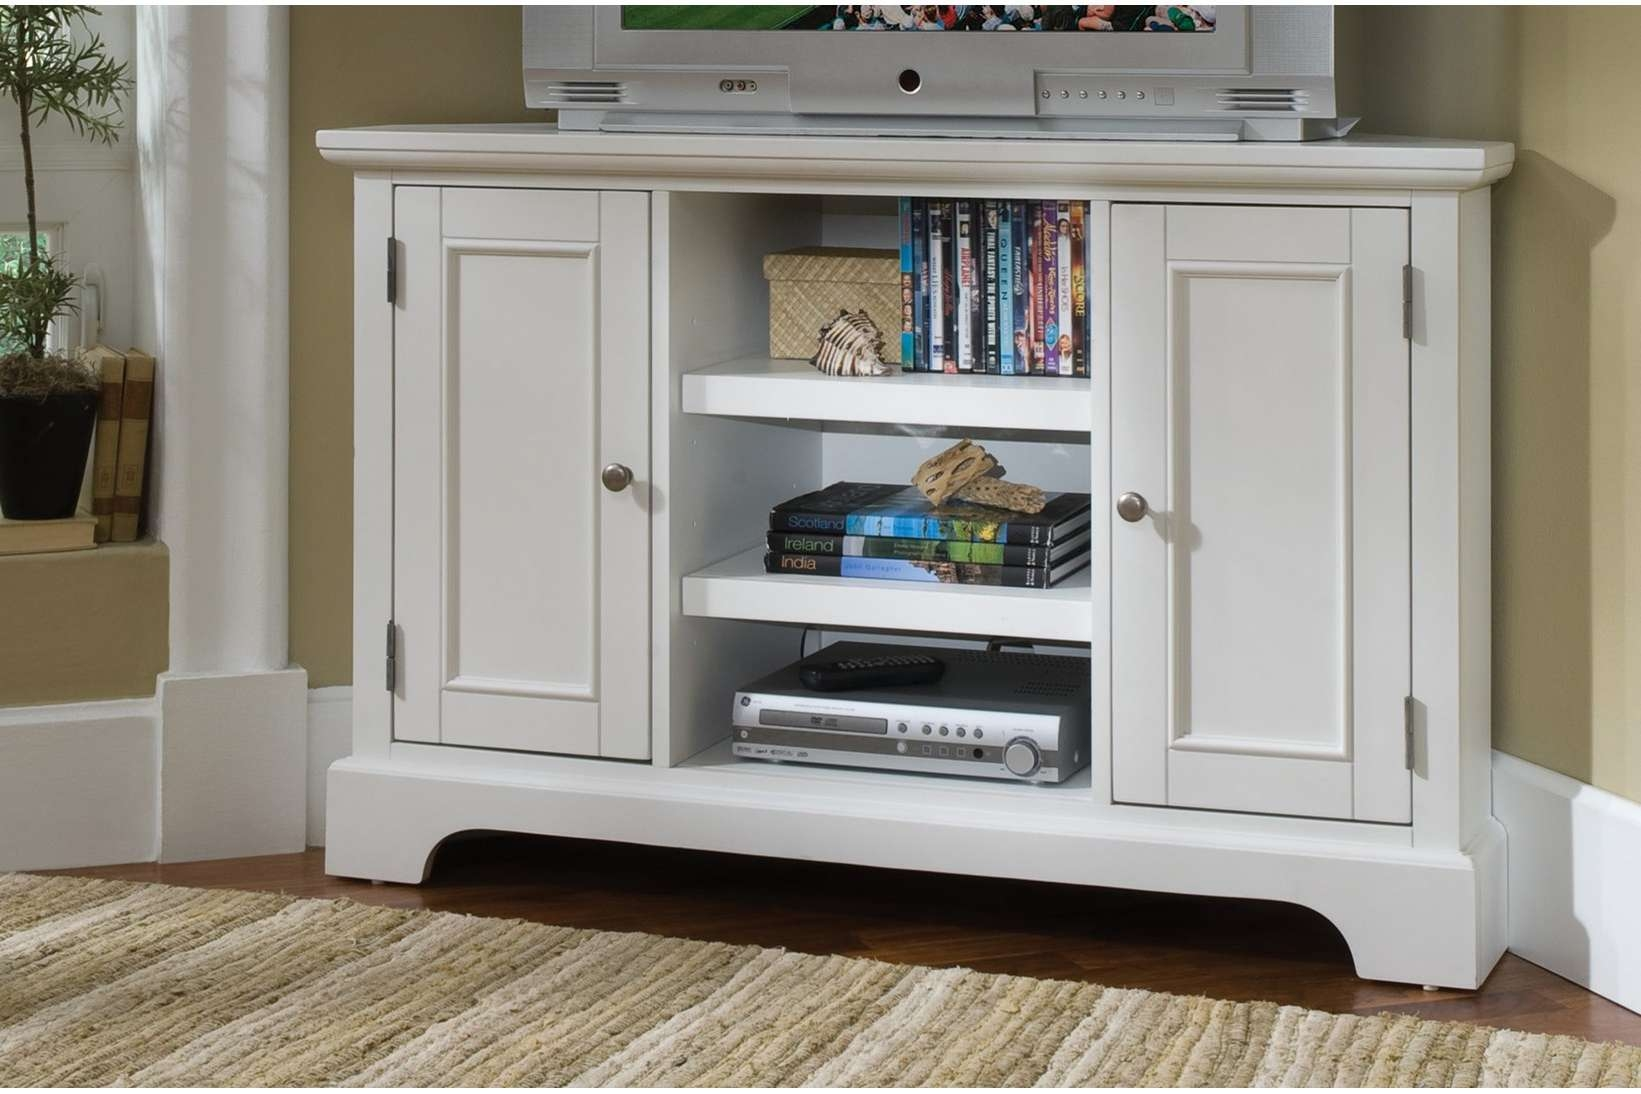 White Corner Tv Cabinet With 2 Doors On Both Sides And 3 Open Regarding Corner Tv Cabinets For Flat Screen (View 20 of 20)